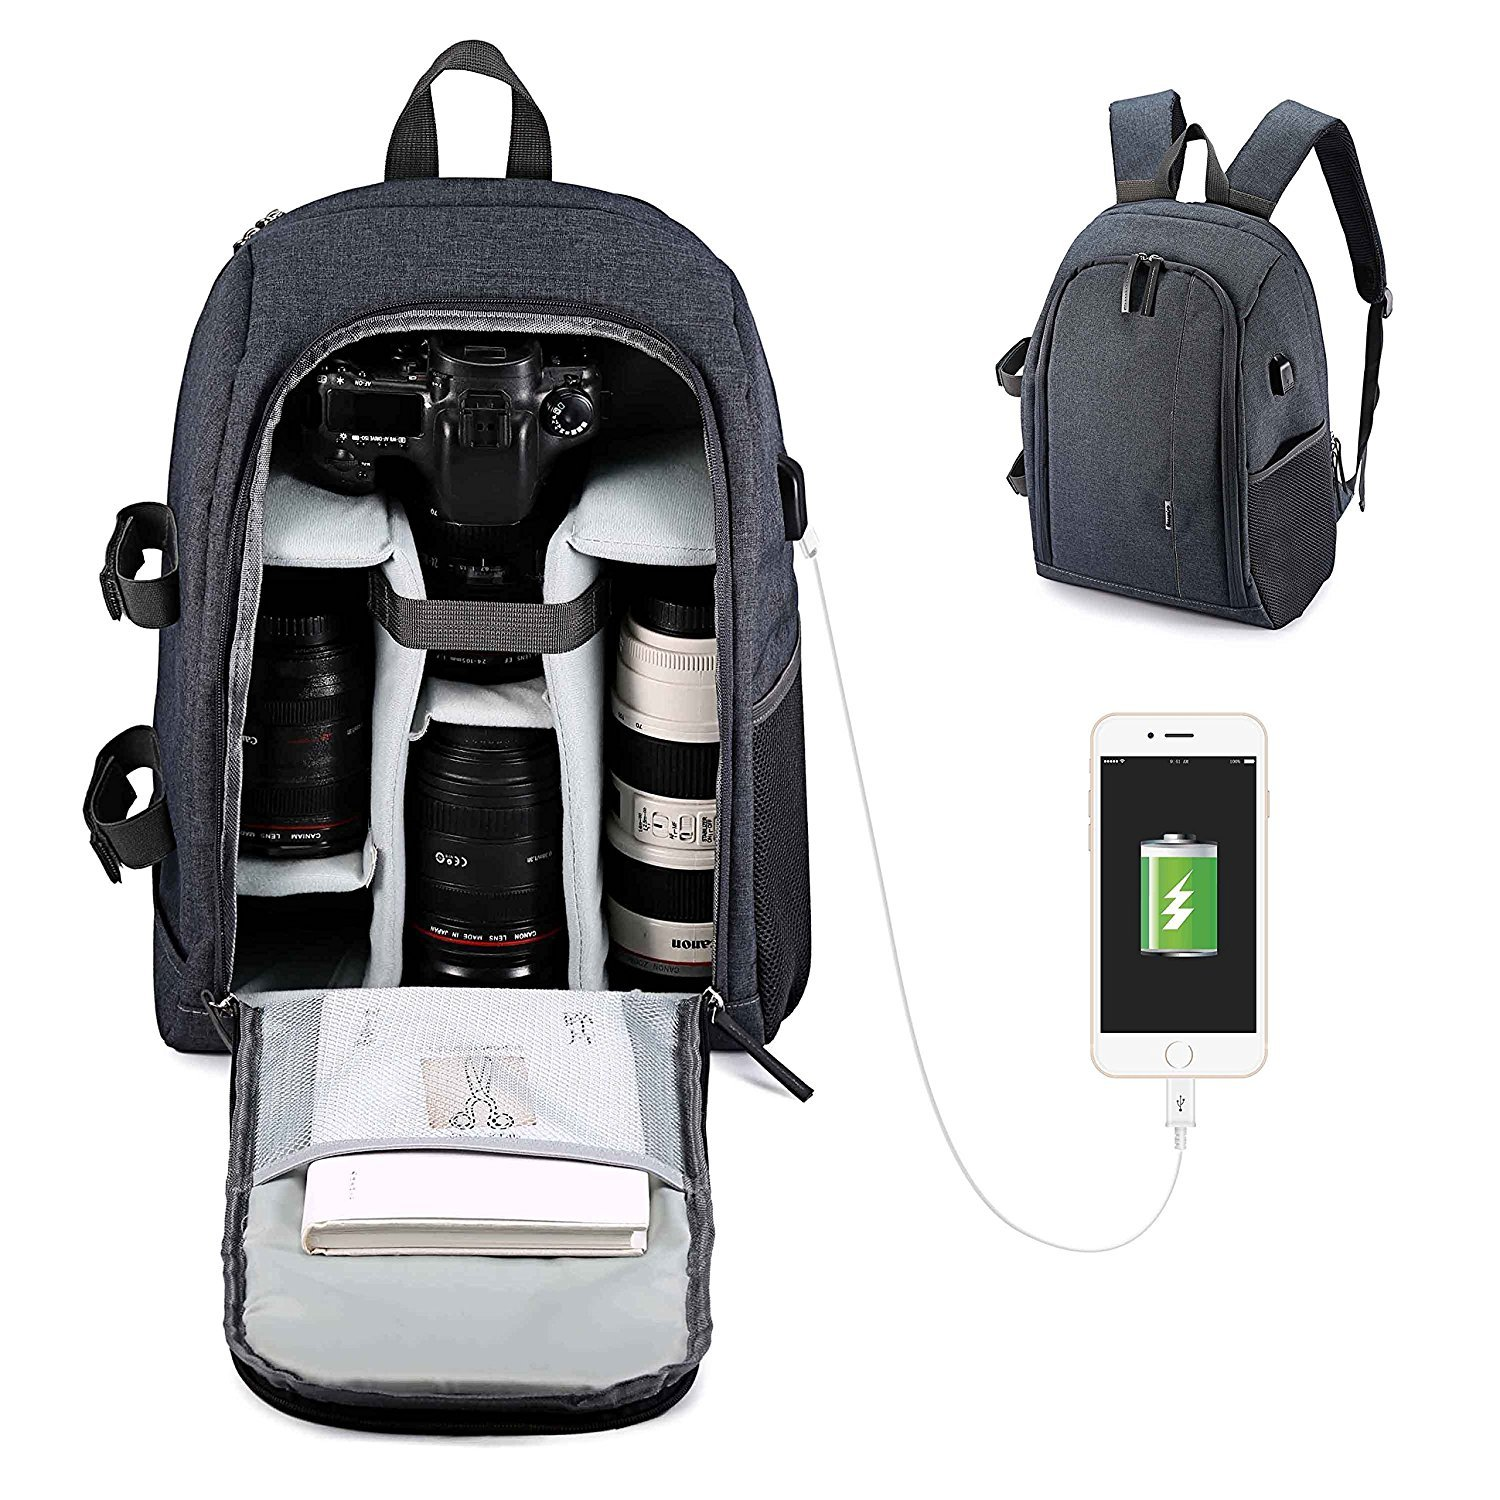 Usbagtech Camera Backpack Waterproof Shockproof DSLR SLR Cameras bag with Tripod Strap for Sony Canon Nikon Olympus, Lens and Accessories, Grey